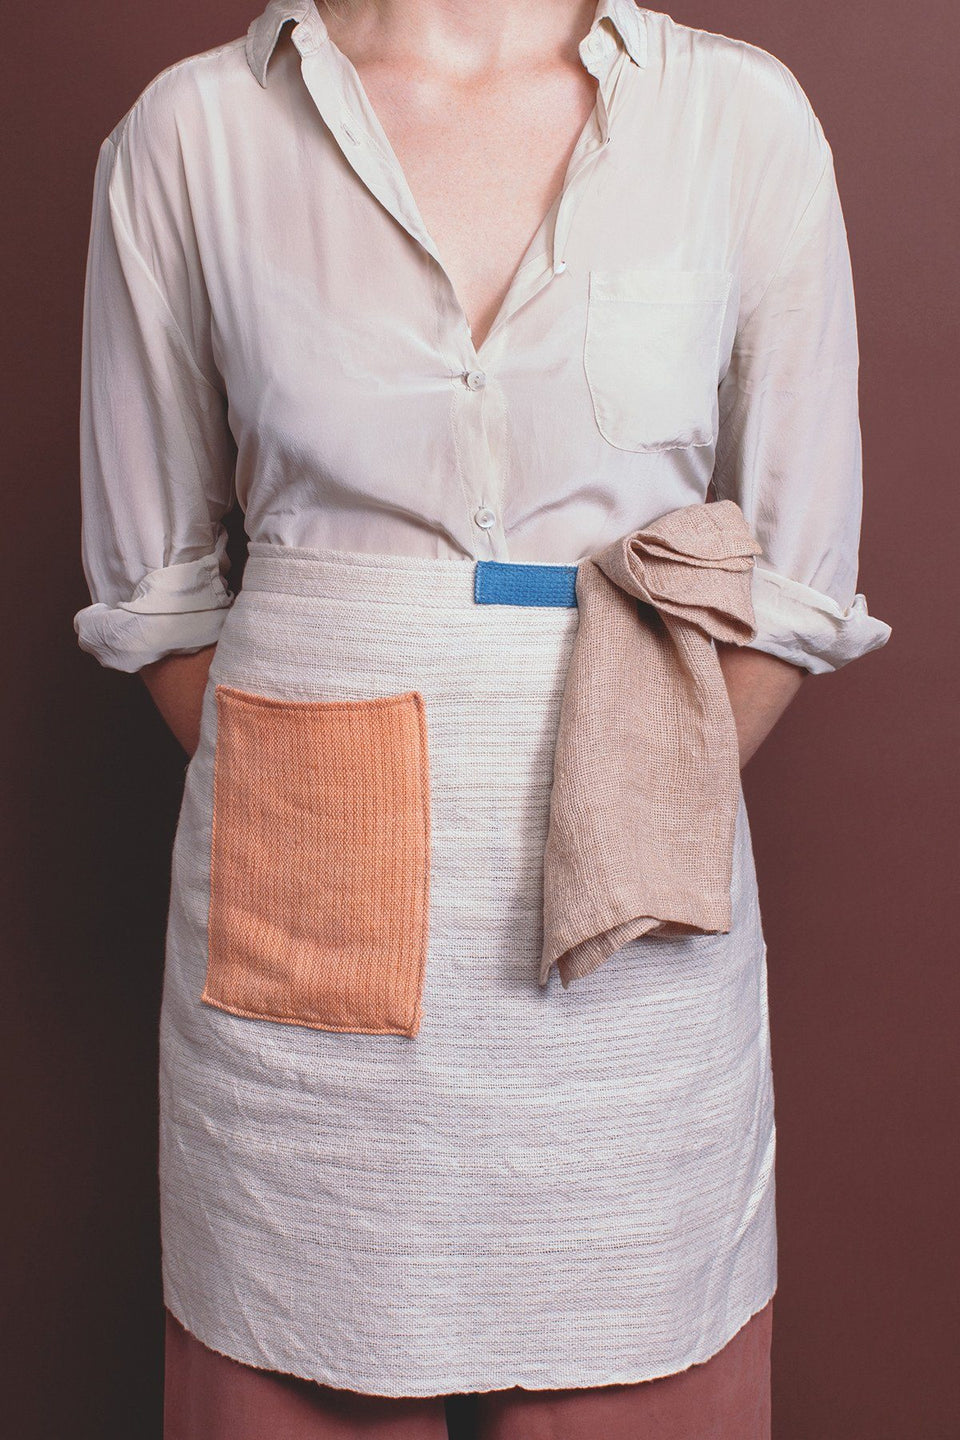 Boxy Half Apron, Natural - SIN  |  Home goods & ceramics